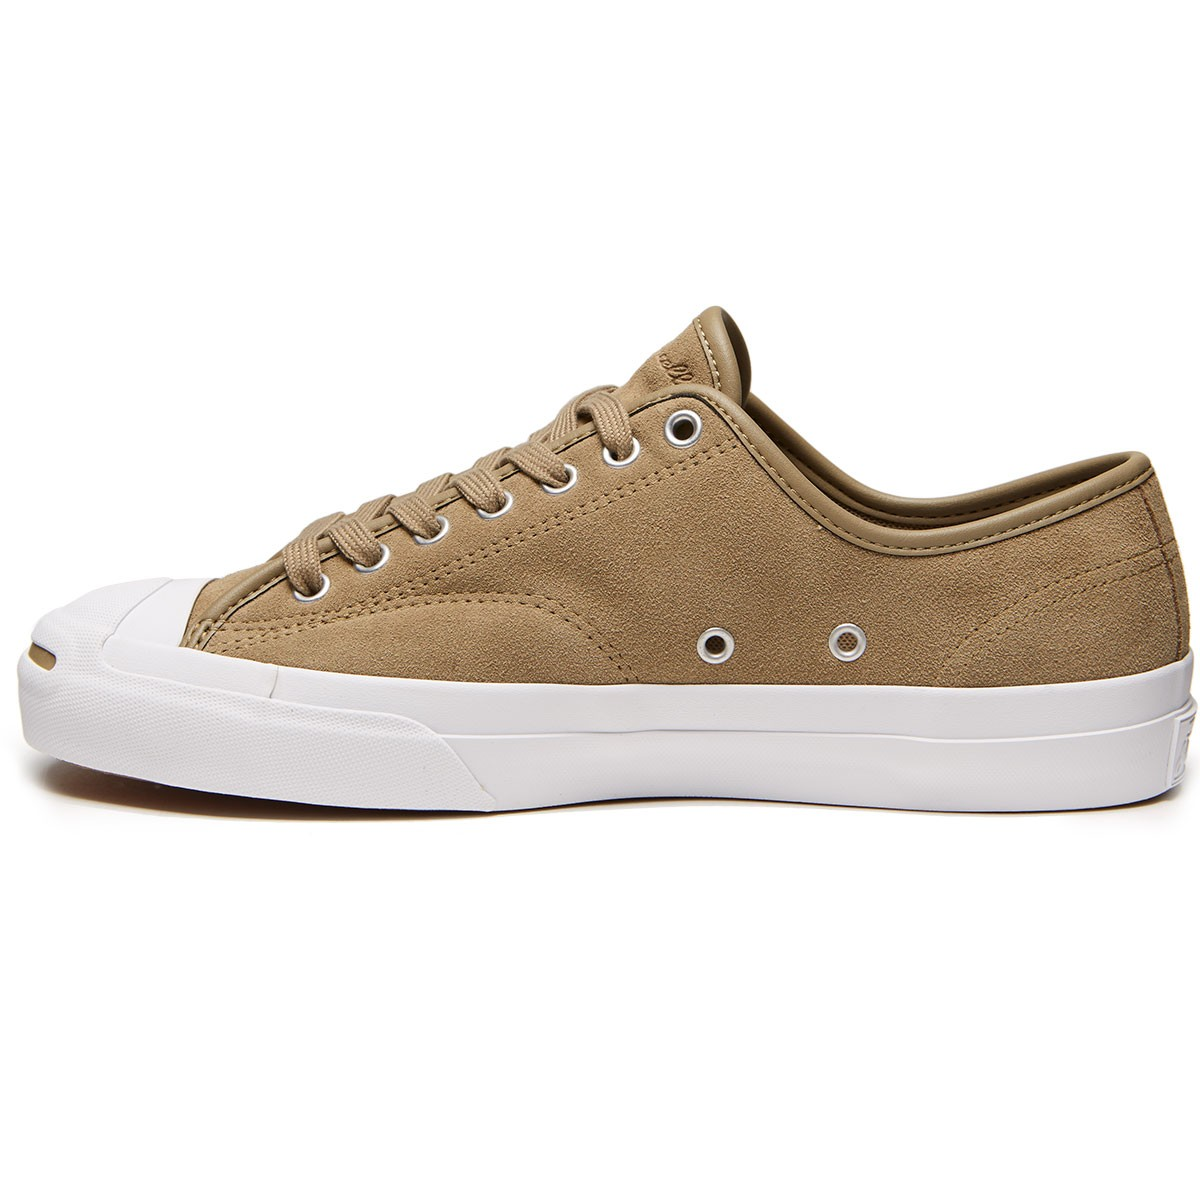 81ab5fe08e1a Converse Jack Purcell Pro Ox Shoes